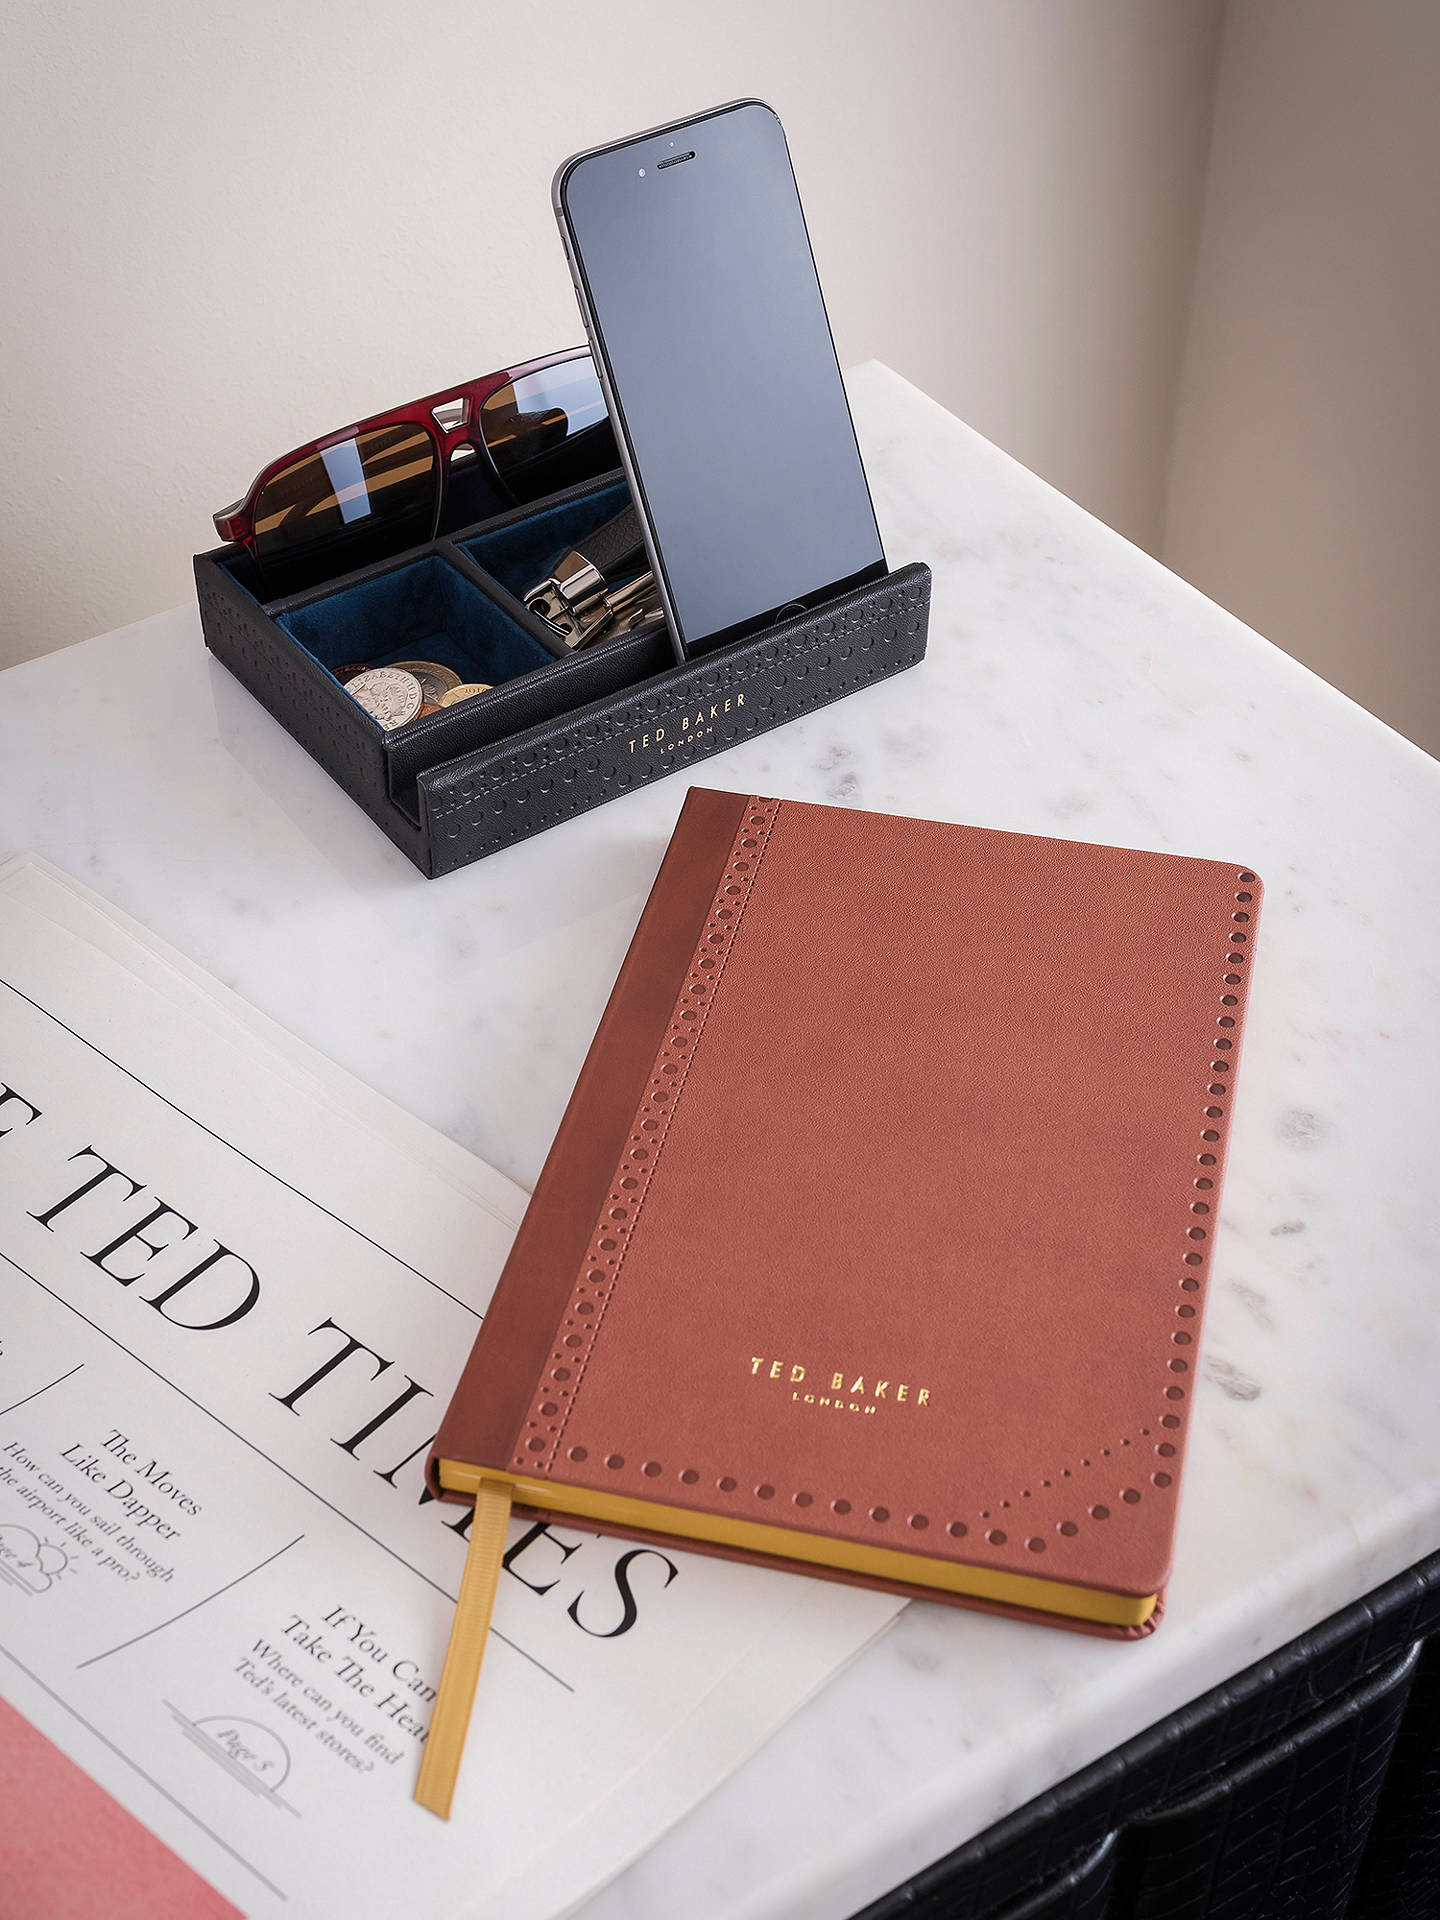 BuyTed Baker Valet Tray Online at johnlewis.com